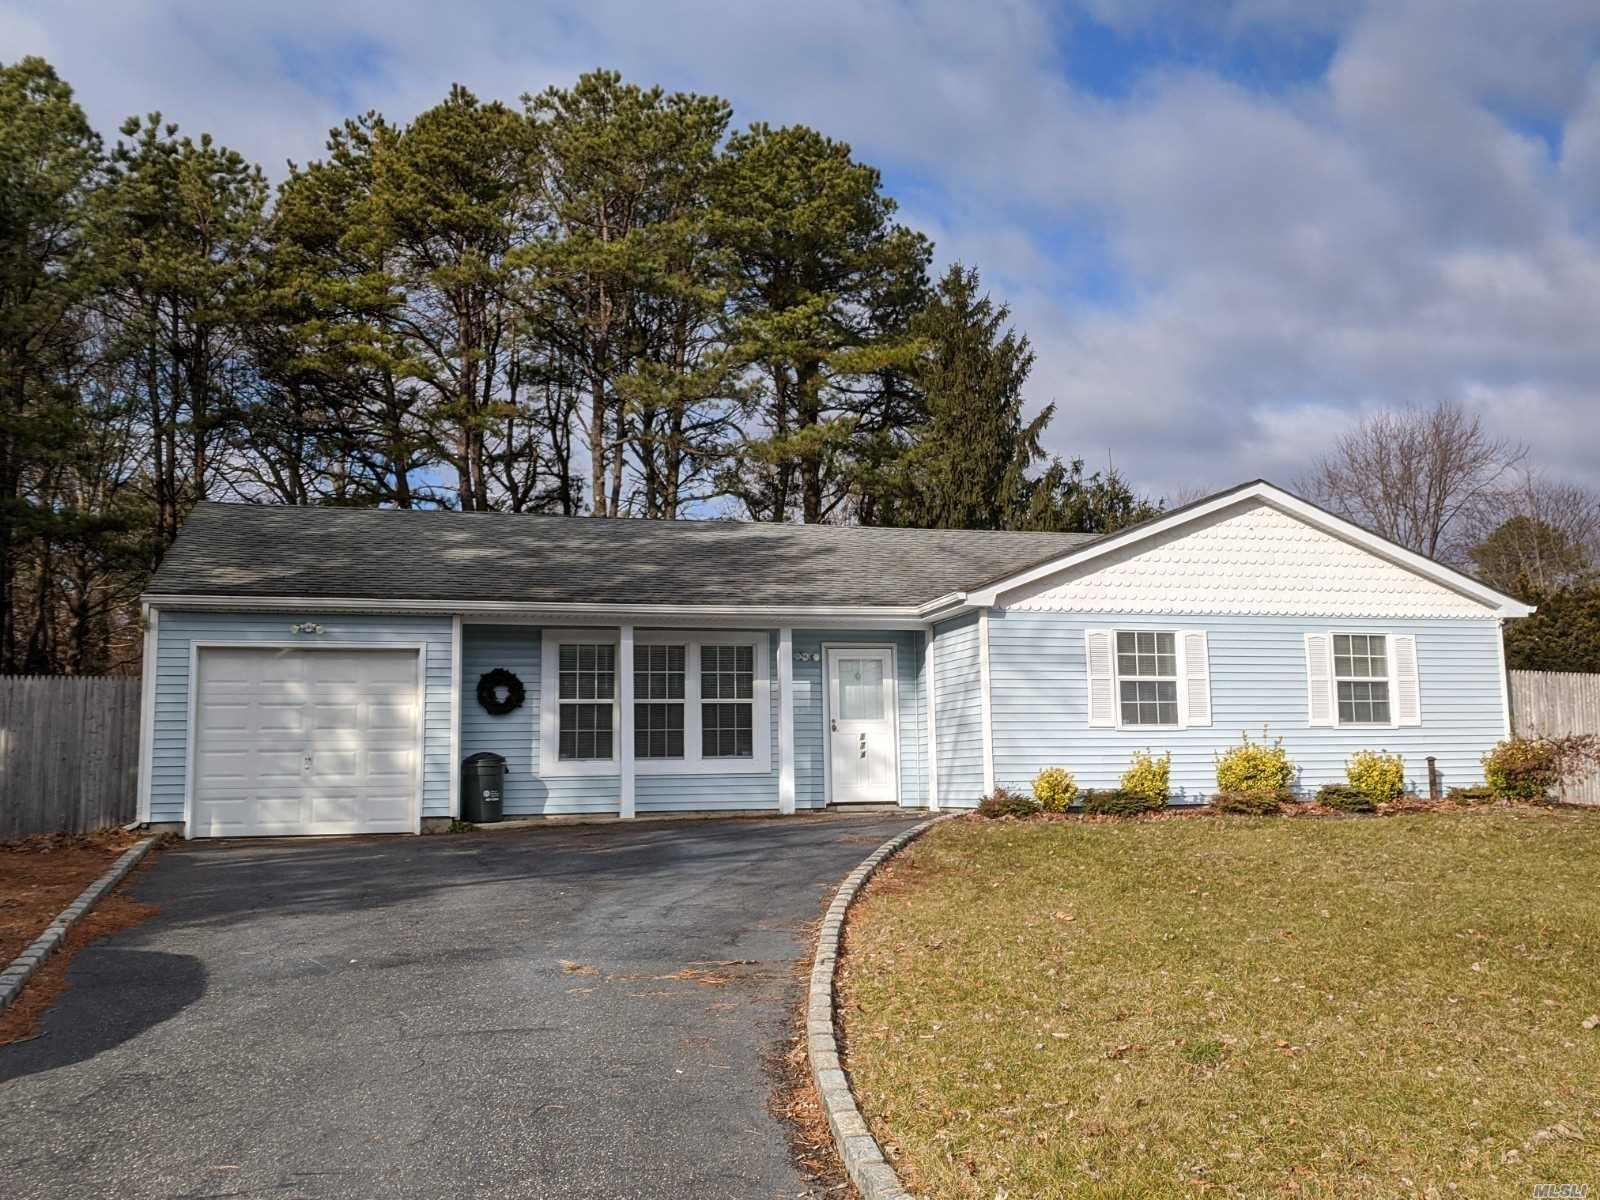 174 Wading River Hol Road, Middle Island, NY 11953 - MLS#: 3189368